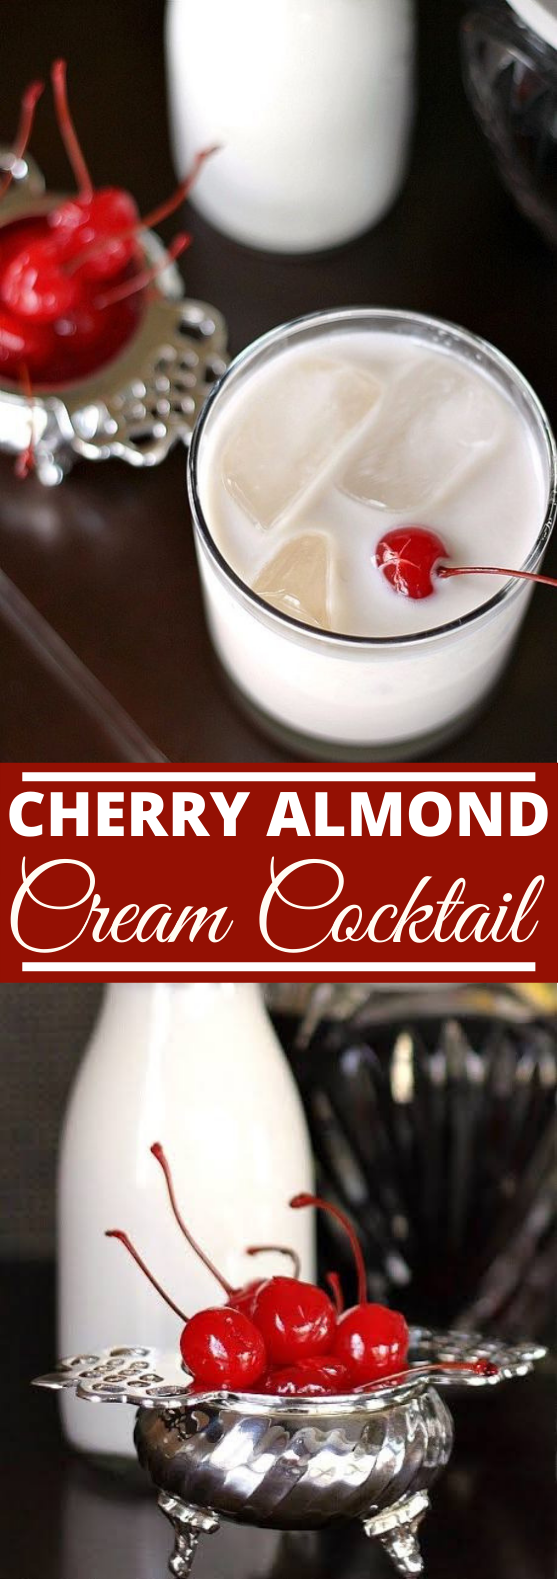 Cherry Almond Cream Cocktail #drinks #cocktail #christmas #winter #beverages